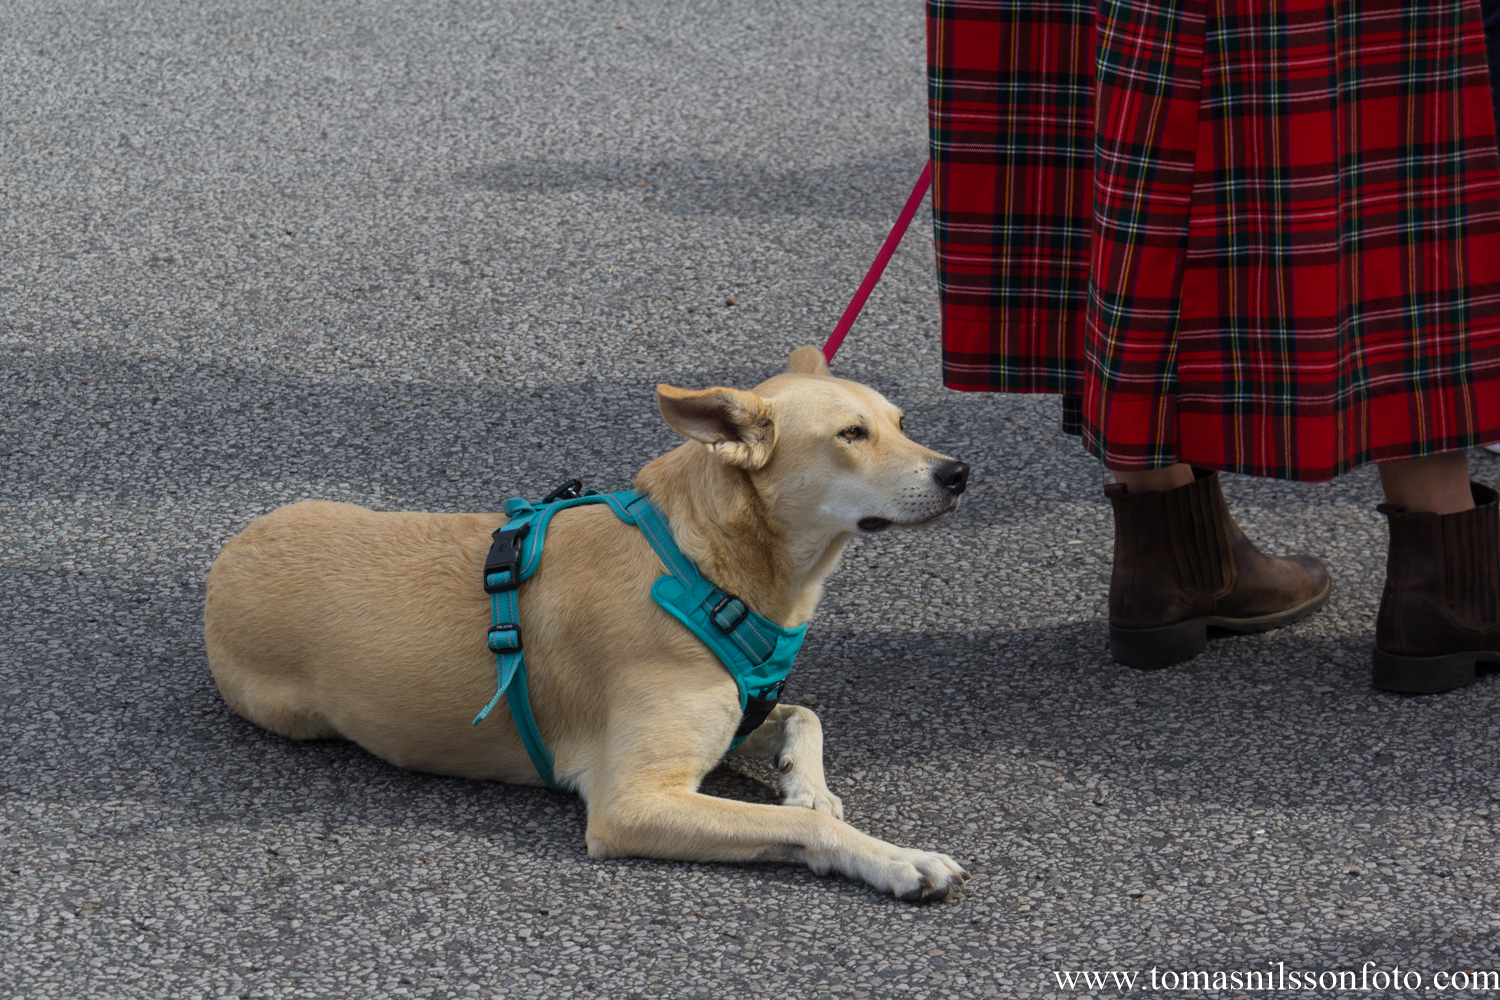 I've never been able to understand why you bring dogs with their sensitive hearing to loud events like this one. Boggles my blond brain cell! I saw several canines there who were very uncomfortable and jumpy with each drum beat blaring at them. :-(